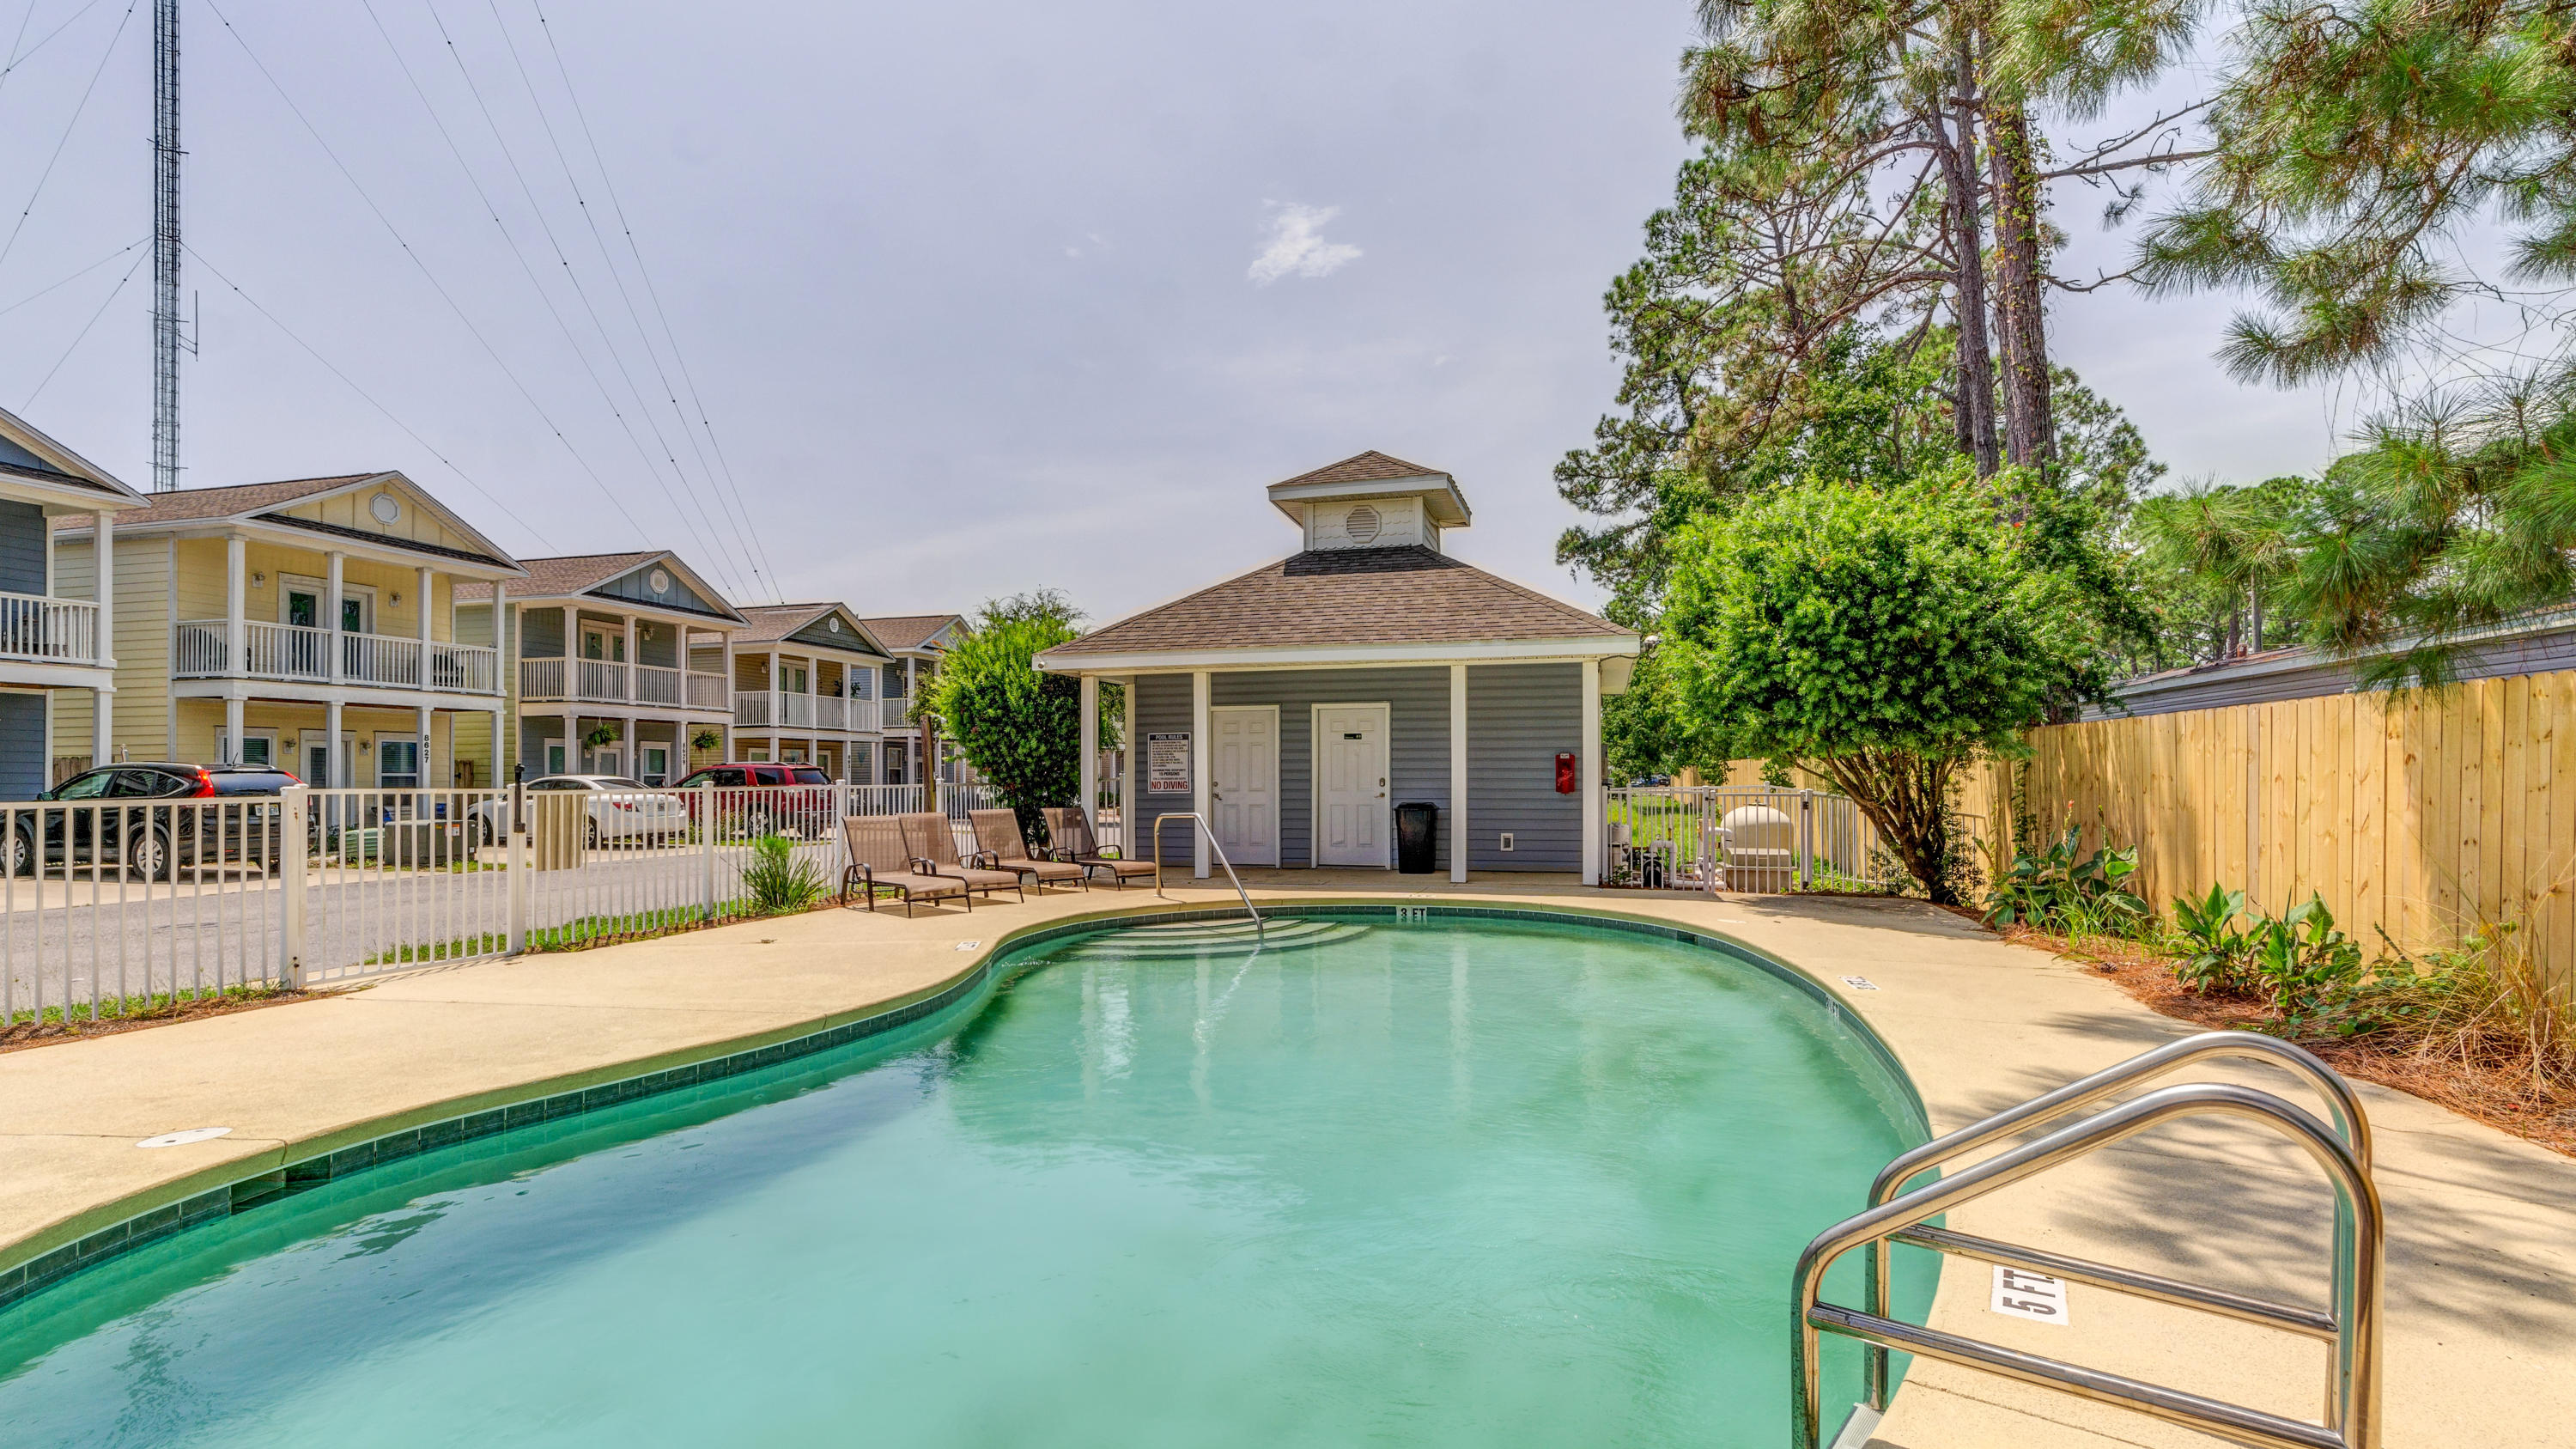 Photo of home for sale at 8621 Marlin, Panama City Beach FL